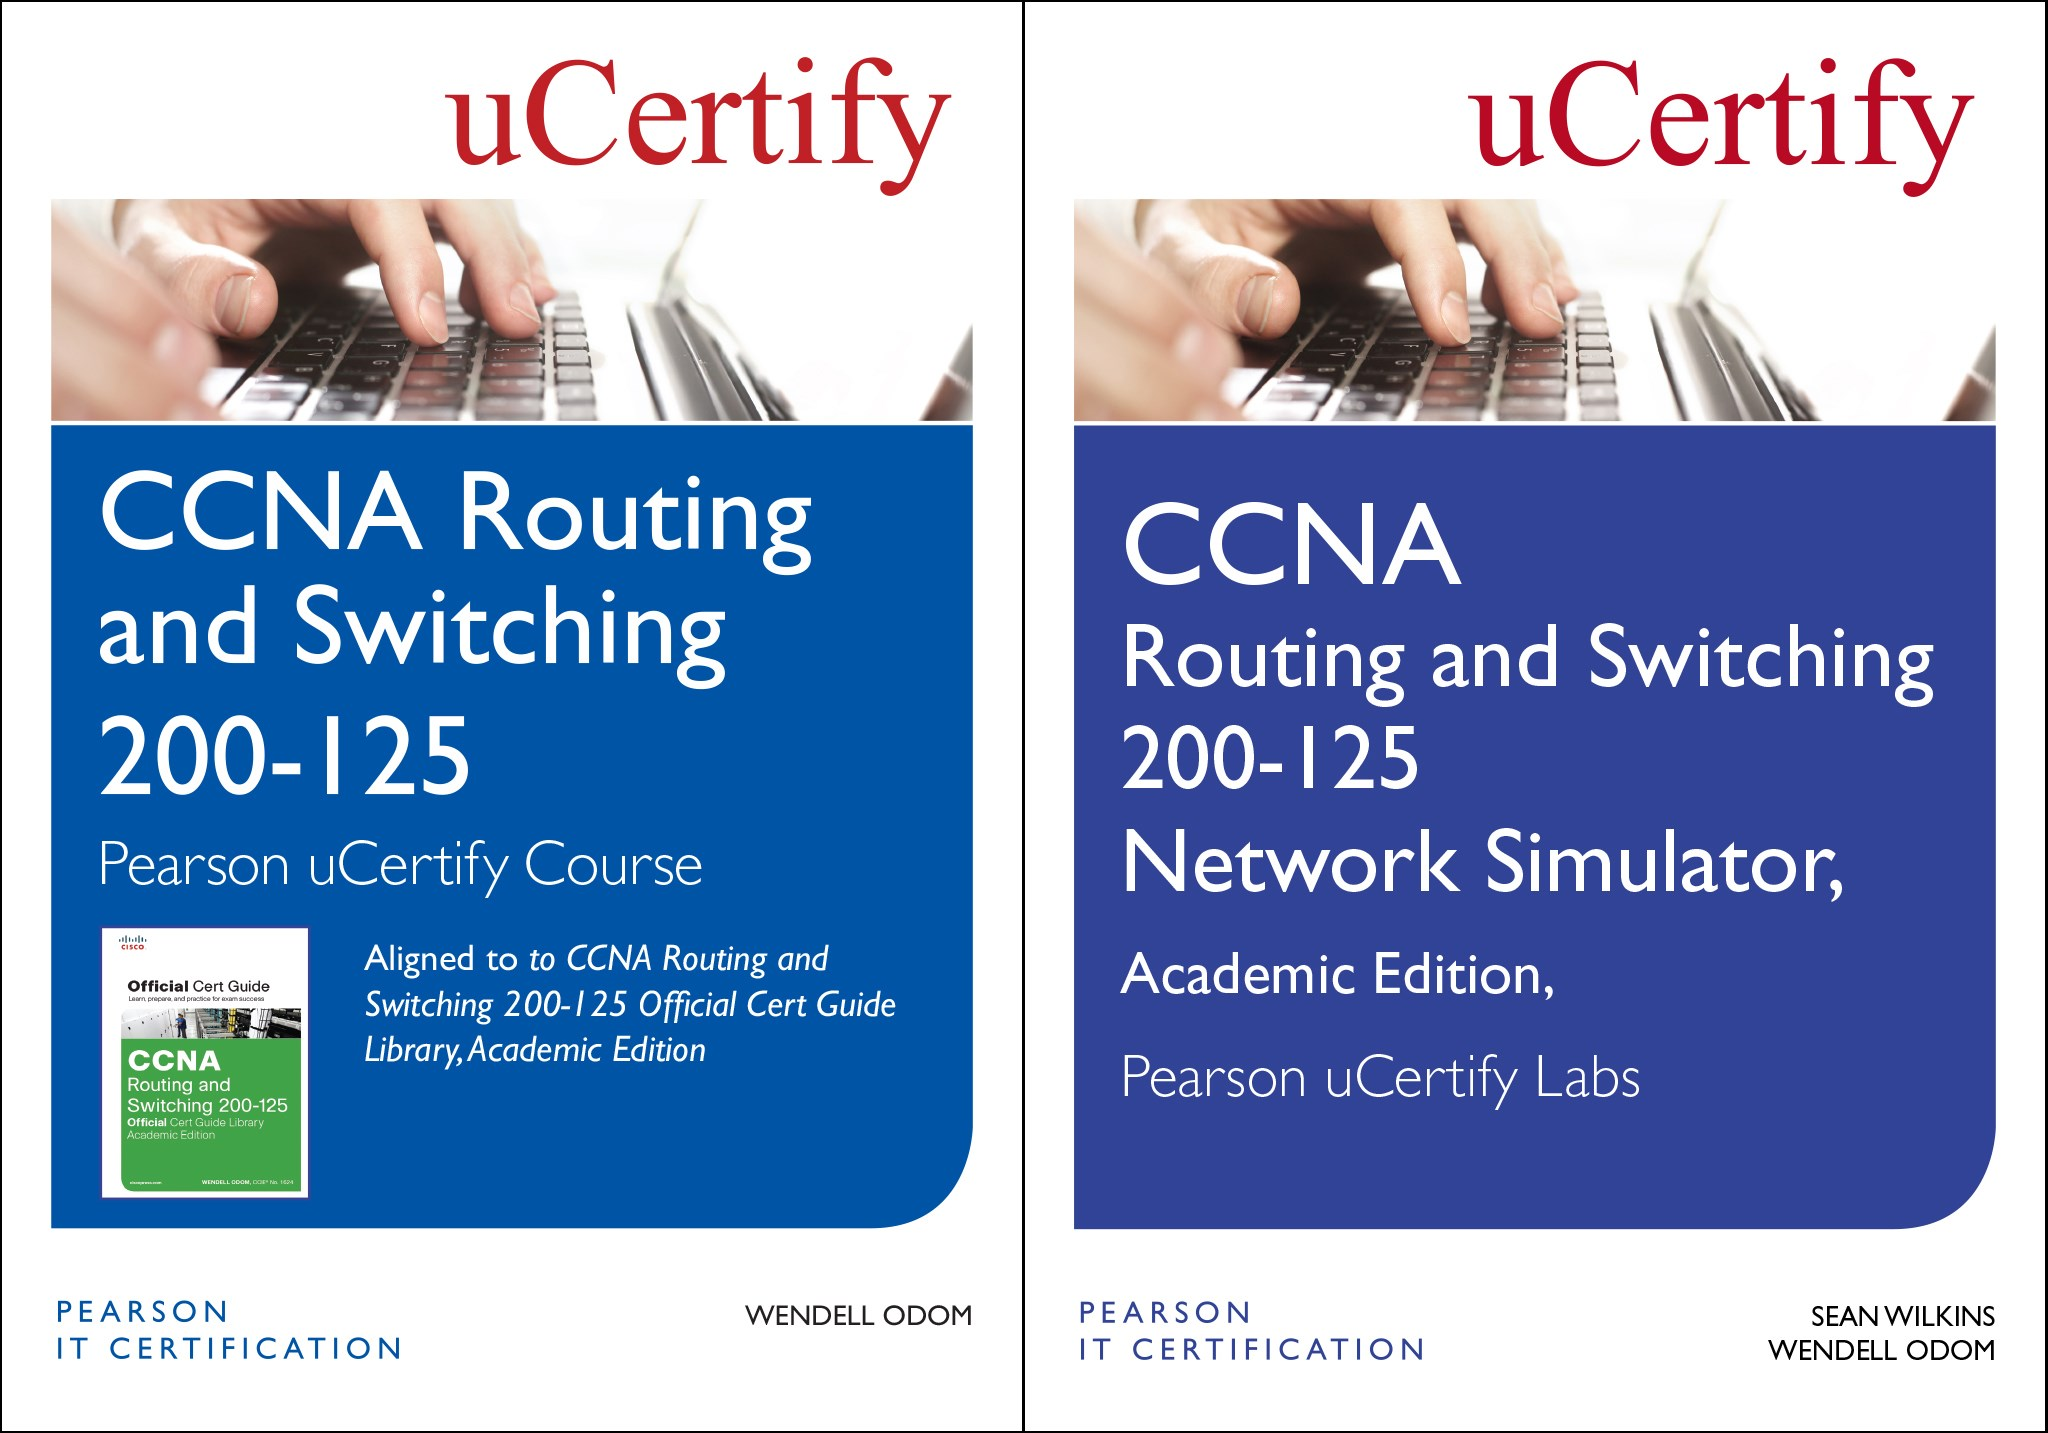 CCNA Routing and Switching 200-125 Pearson uCertify Course and Network Simulator Academic Edition Bundle